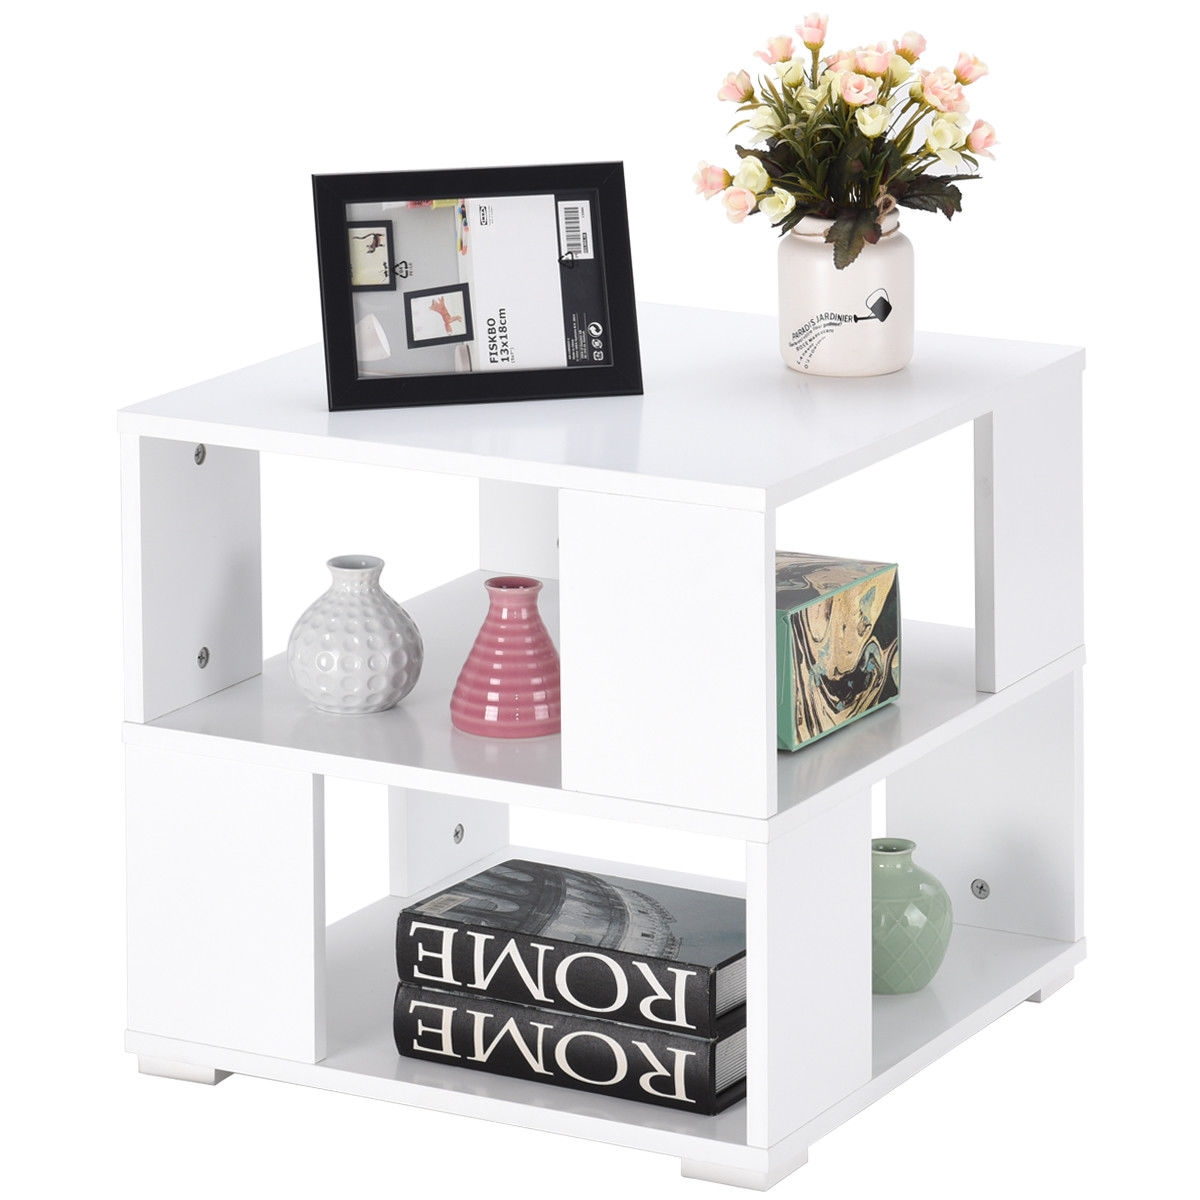 Modern Wood Square End Table with Storage Cube Shelves